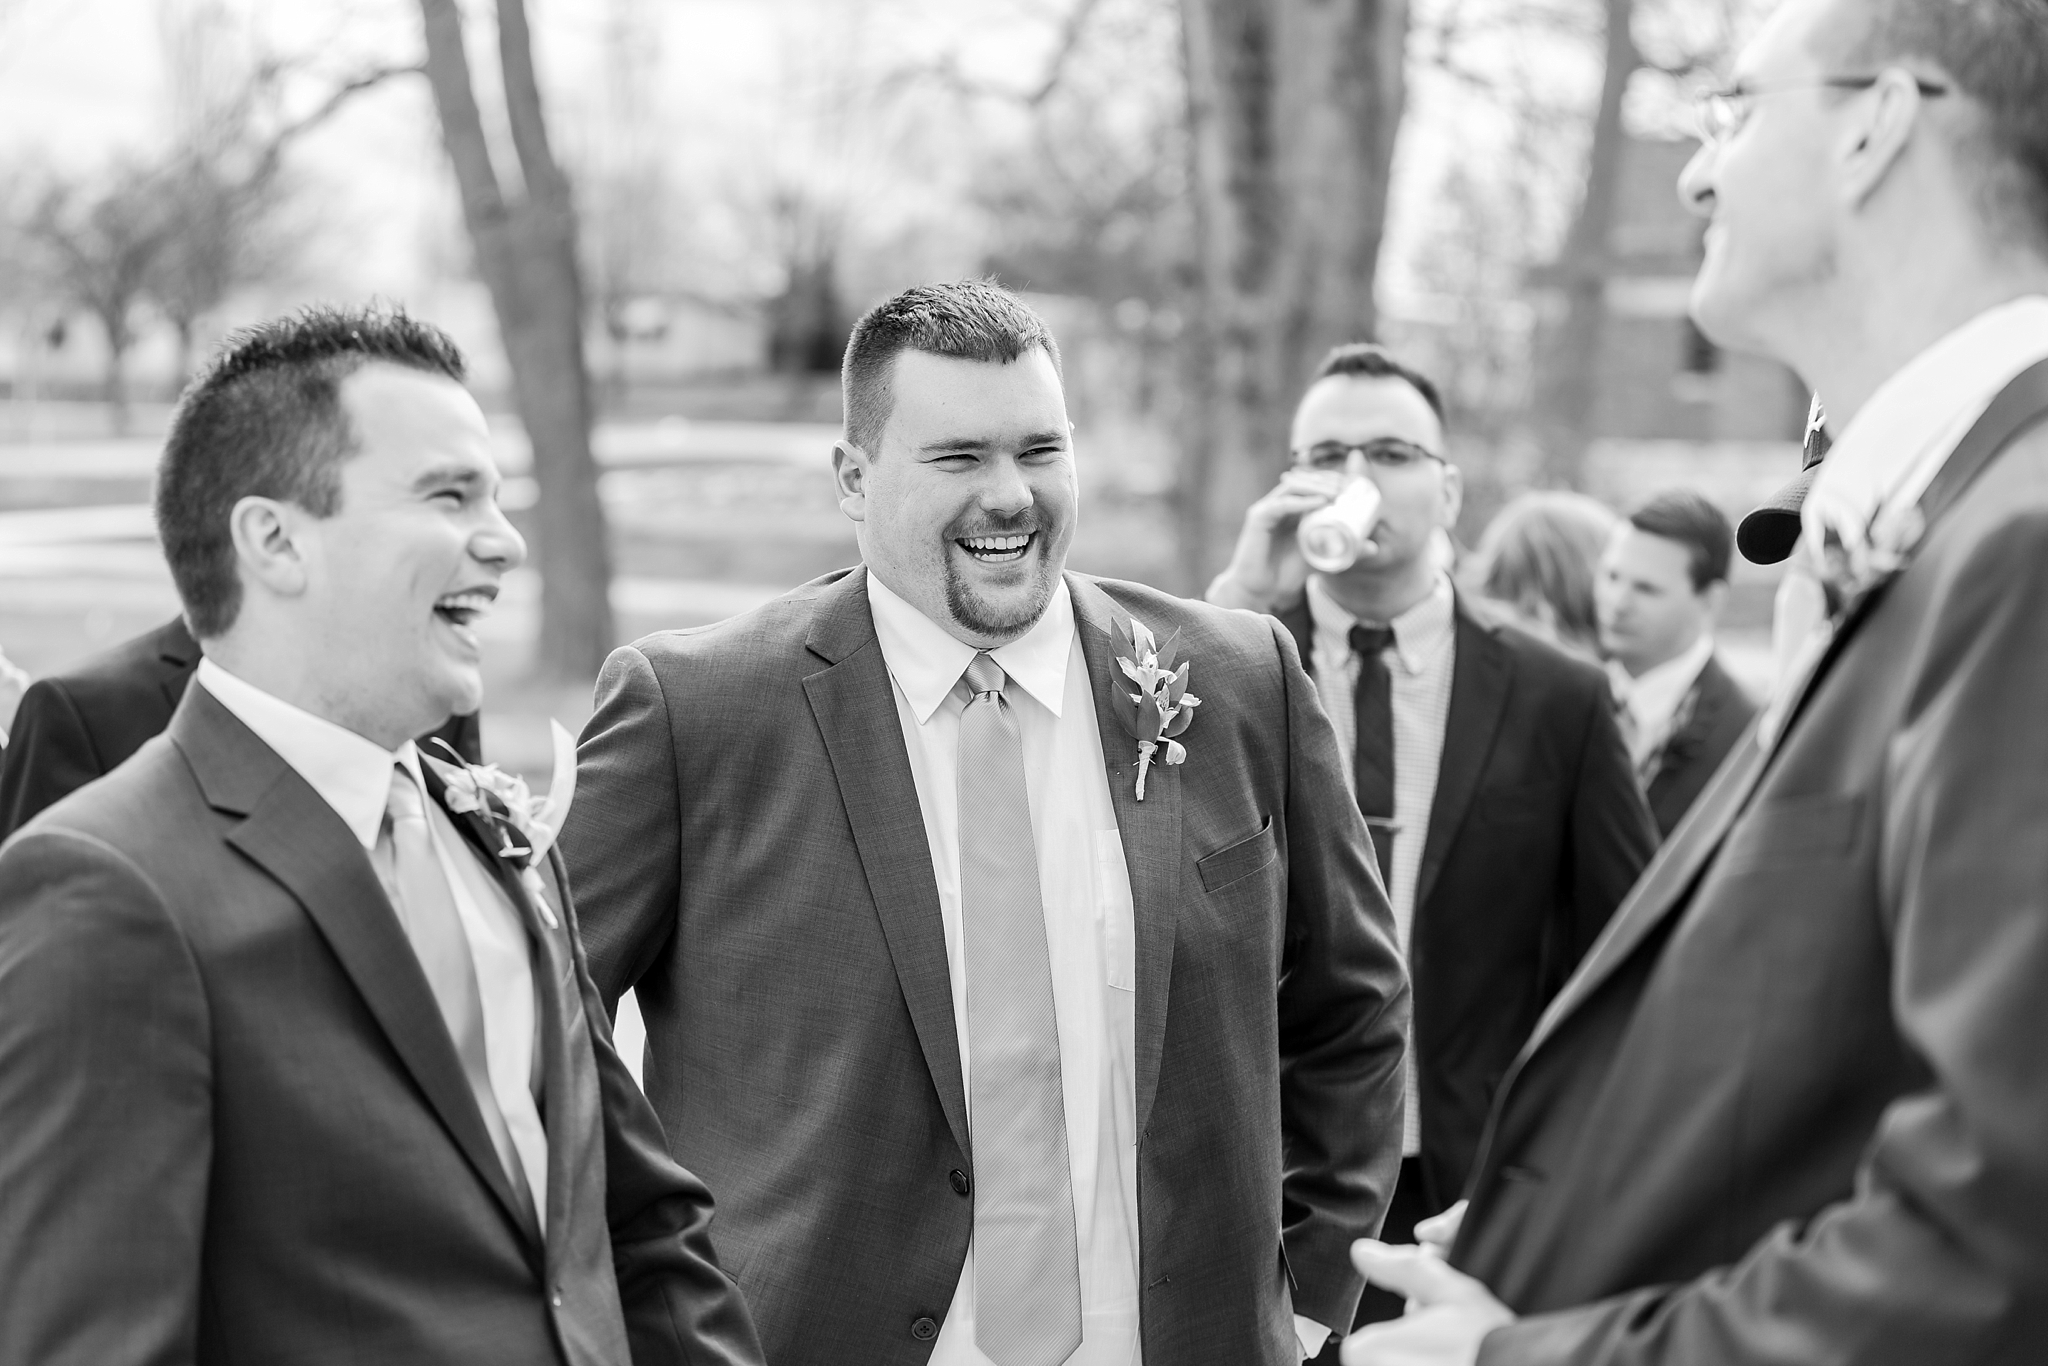 classic-timeless-candid-wedding-photos-in-grosse-ile-and-trenton-michigan-by-courtney-carolyn-photography_0054.jpg